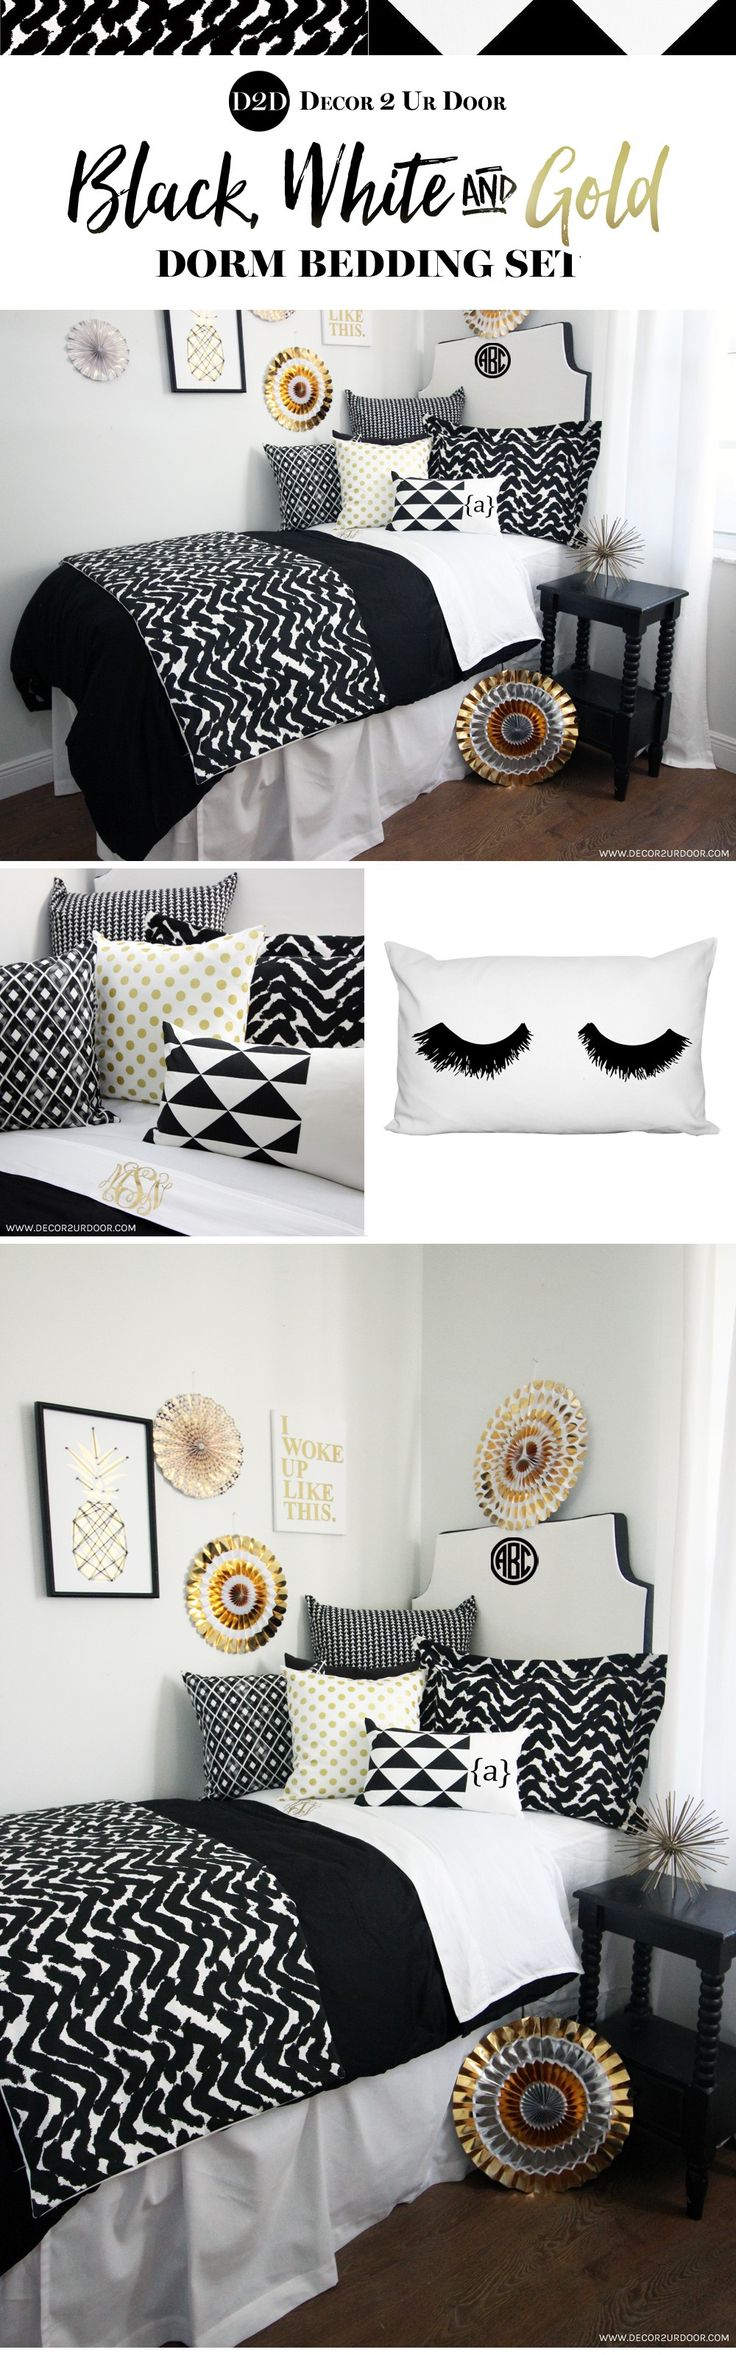 Black, white and gold dorm room. Trendy dorm room bedding and decor. Decorating a dorm room? Check out Décor 2 Ur Door for the latest dorm room decorating trends. Dorm Room Décor. Designer dorm headboard, dorm bed scarf, dorm bed skirt/dorm dust ruffle, monogram dorm room pillows, dorm room window treatment, lofted dorm bed décor, dorm room wall monogram, chair cover for dorm room, modern dorm room furniture and so much more!